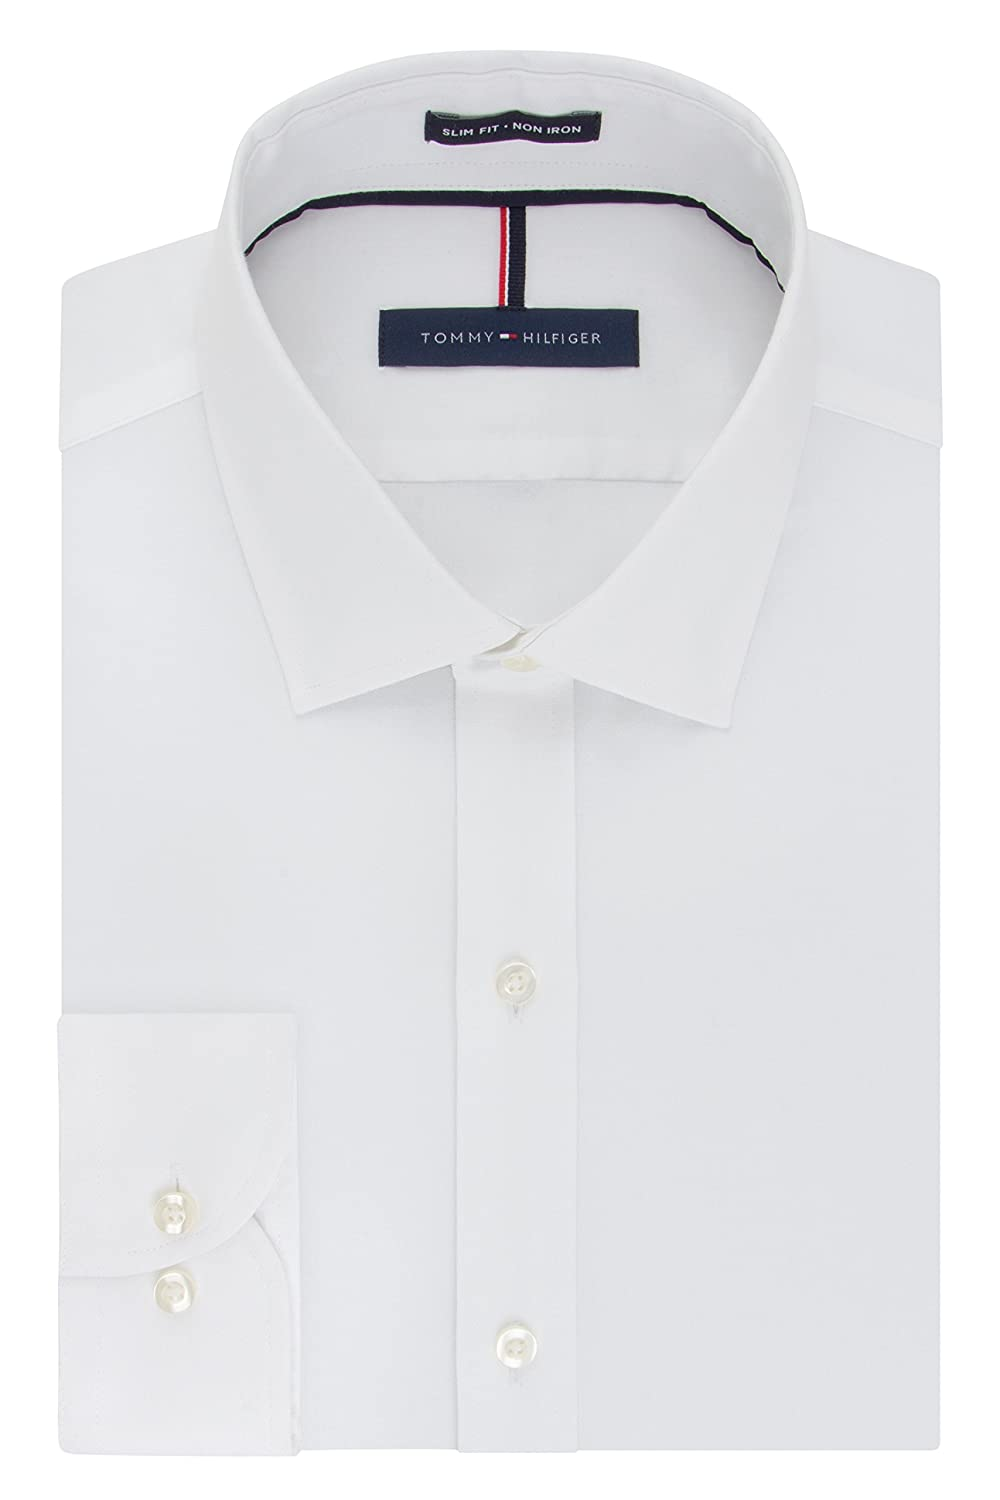 Tommy Hilfiger Mens Dress Shirts Non Iron Slim Fit Solid Spread Collar by Tommy+Hilfiger